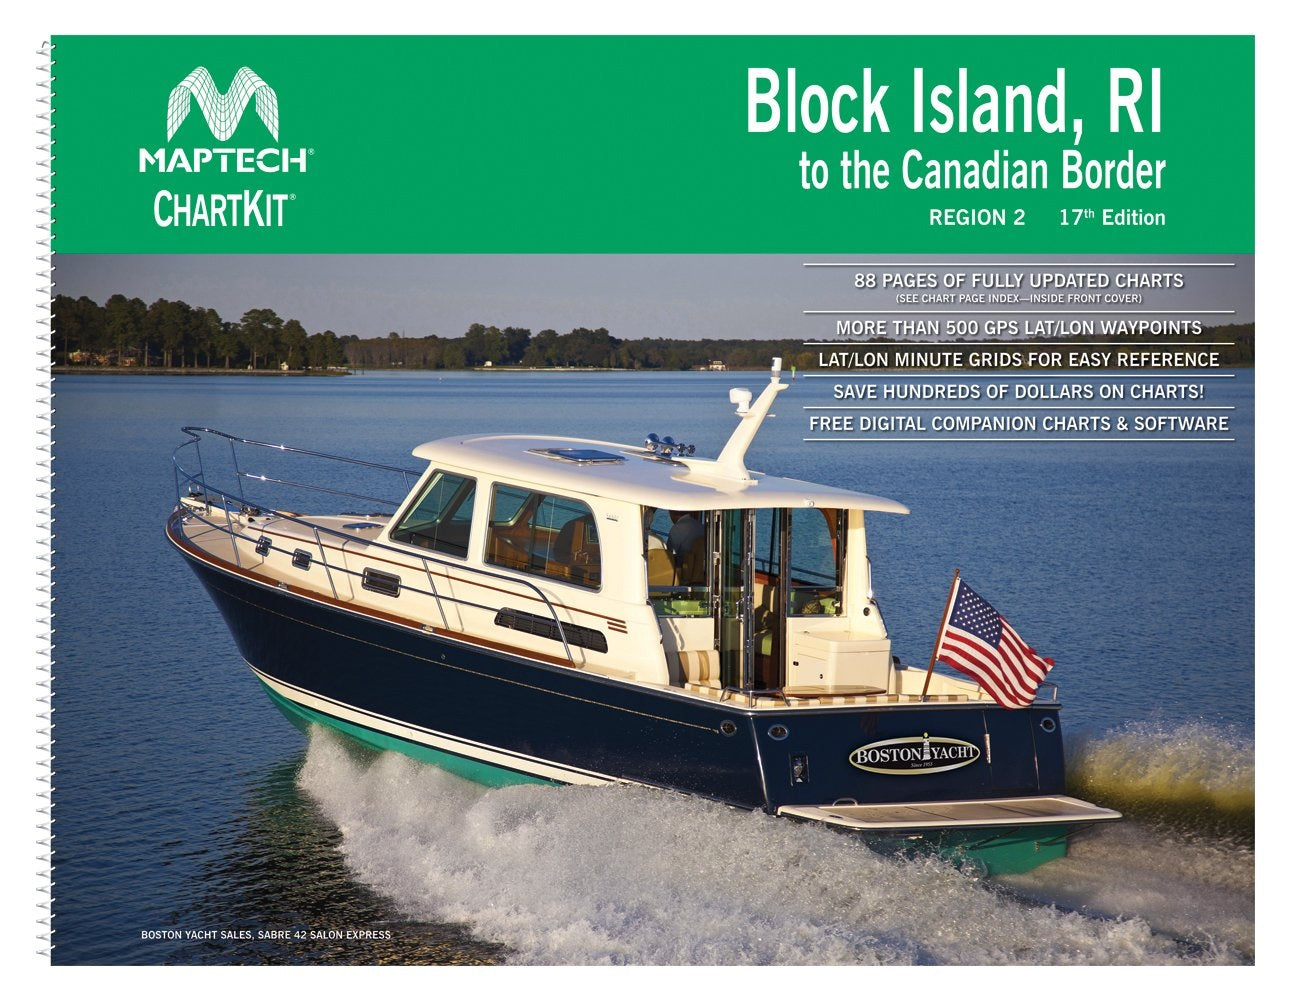 Block Island, RI to the Canadian Border Region 2, 17th Edition Richardson's Maptech Chartkit